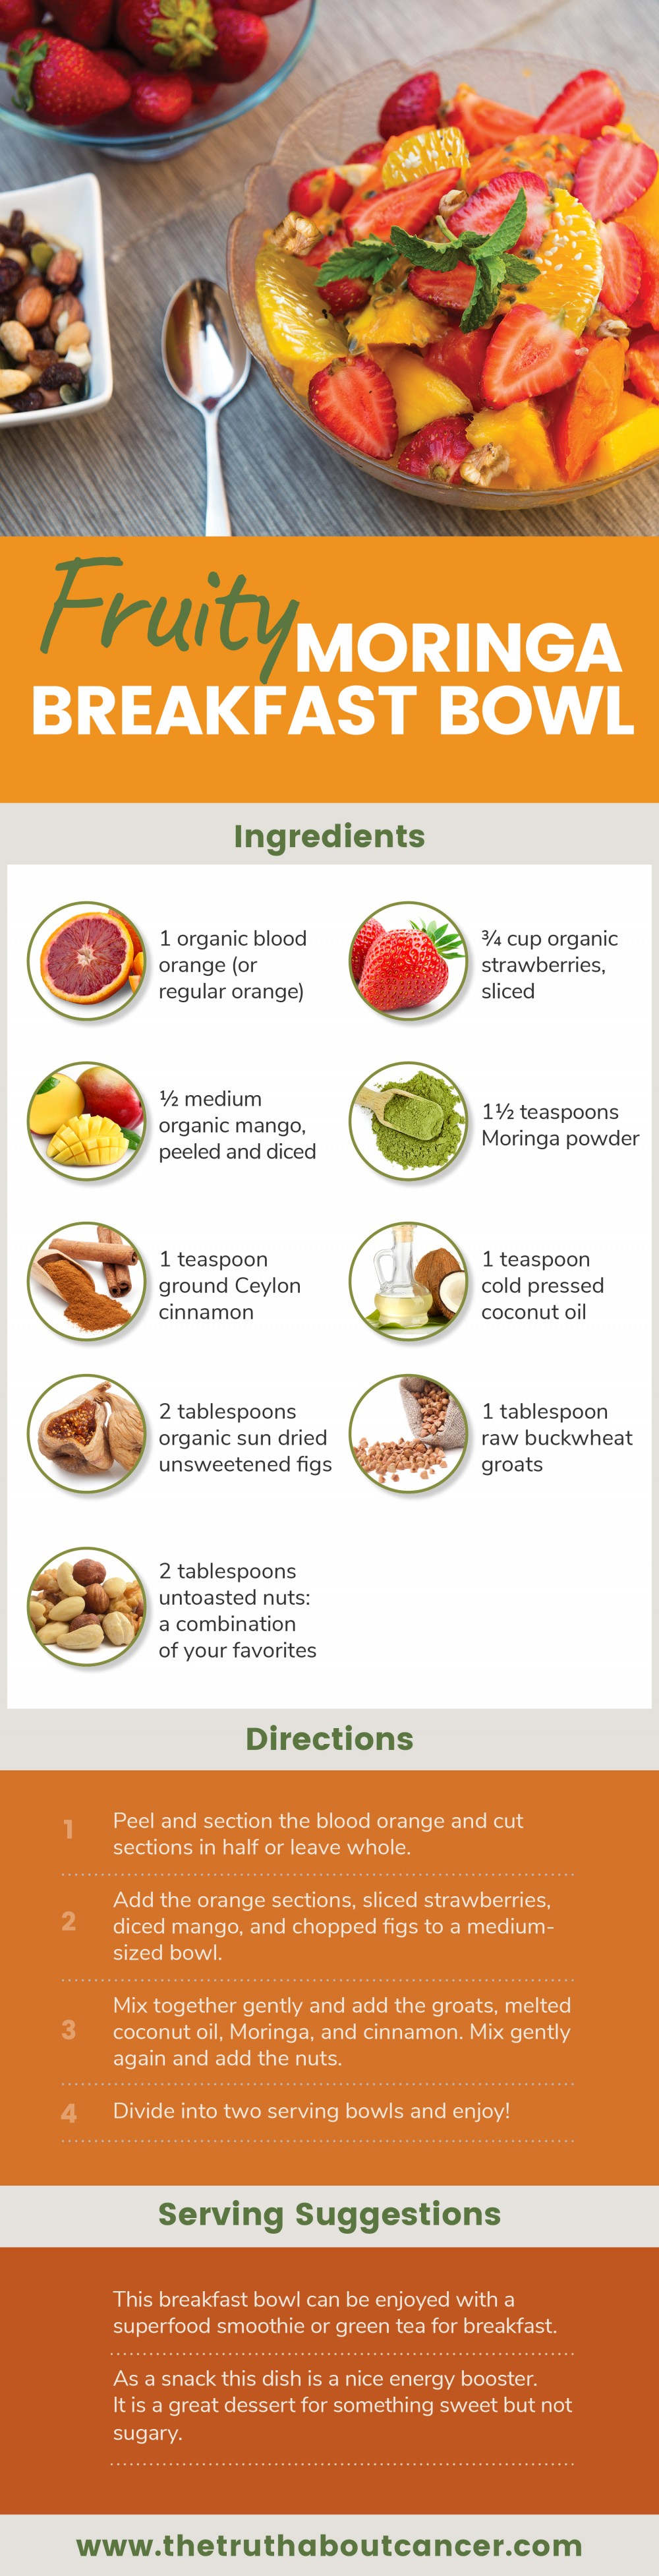 fruity moringa breakfast bowl infographic